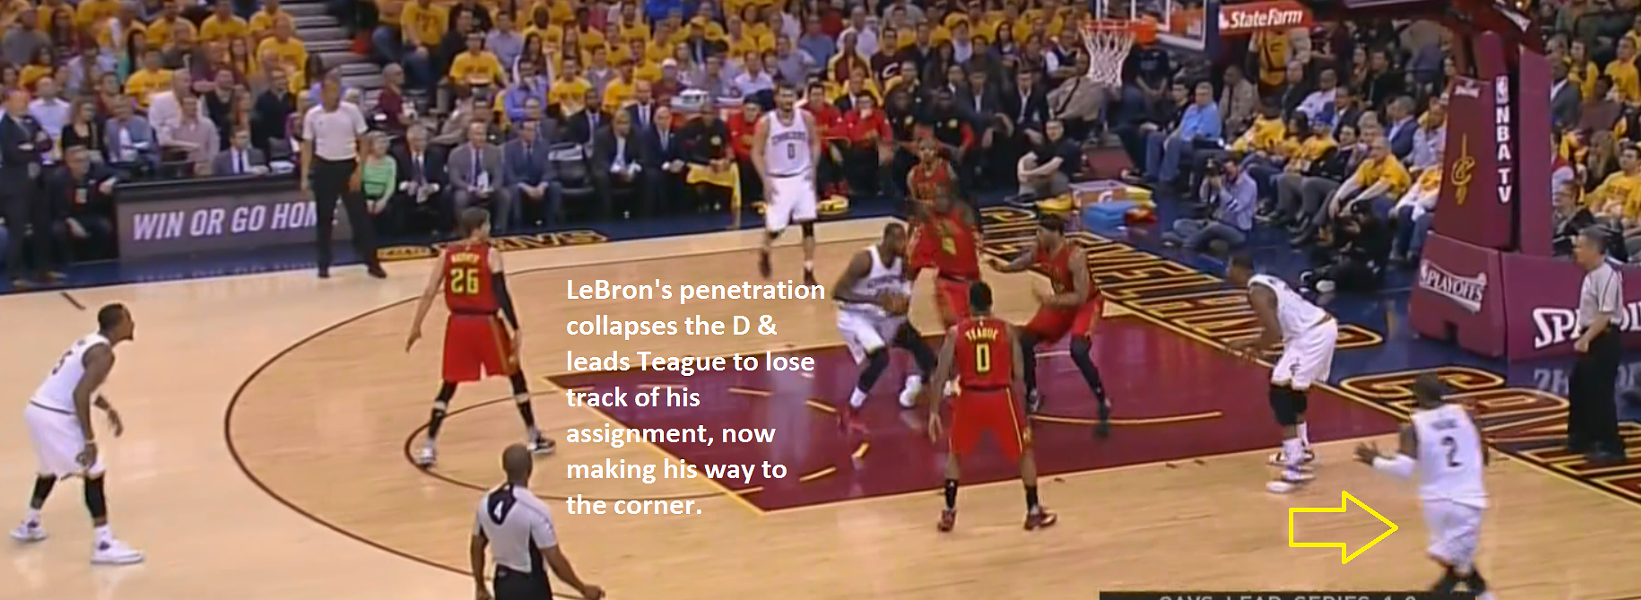 lebron_collapses_the_lane.png